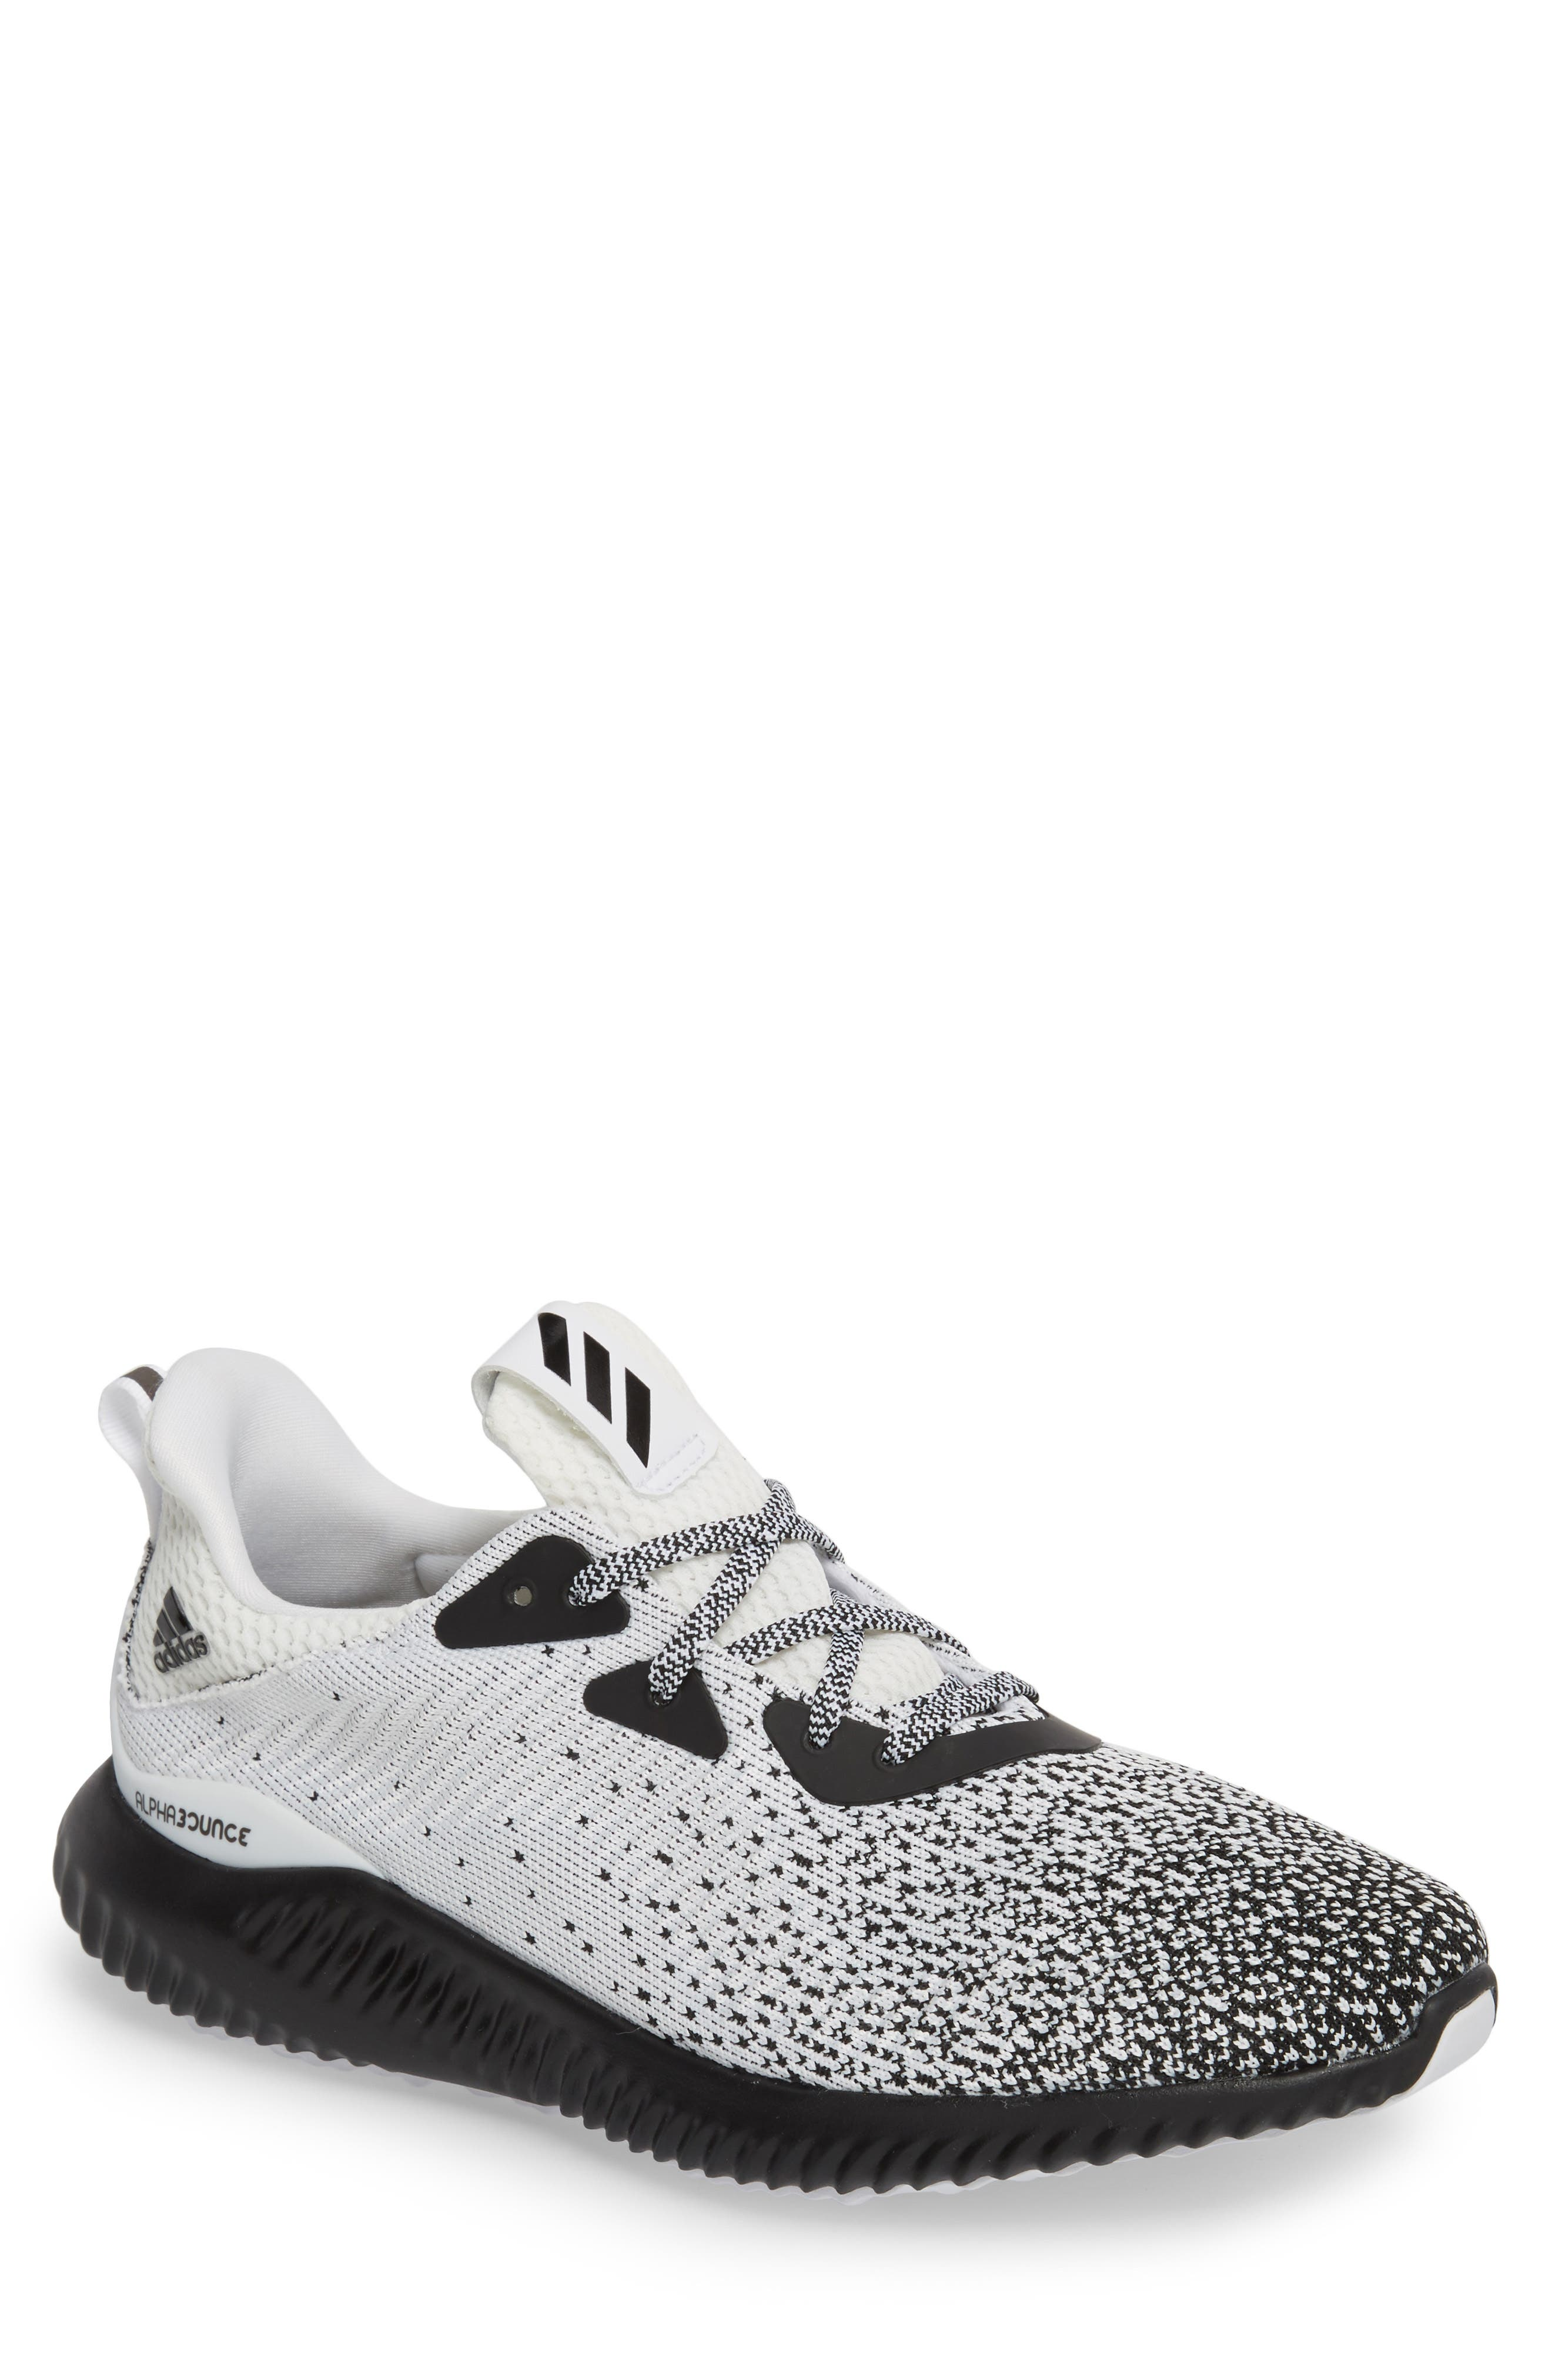 AlphaBounce CK Running Shoe,                             Main thumbnail 1, color,                             Core Black / White / Black